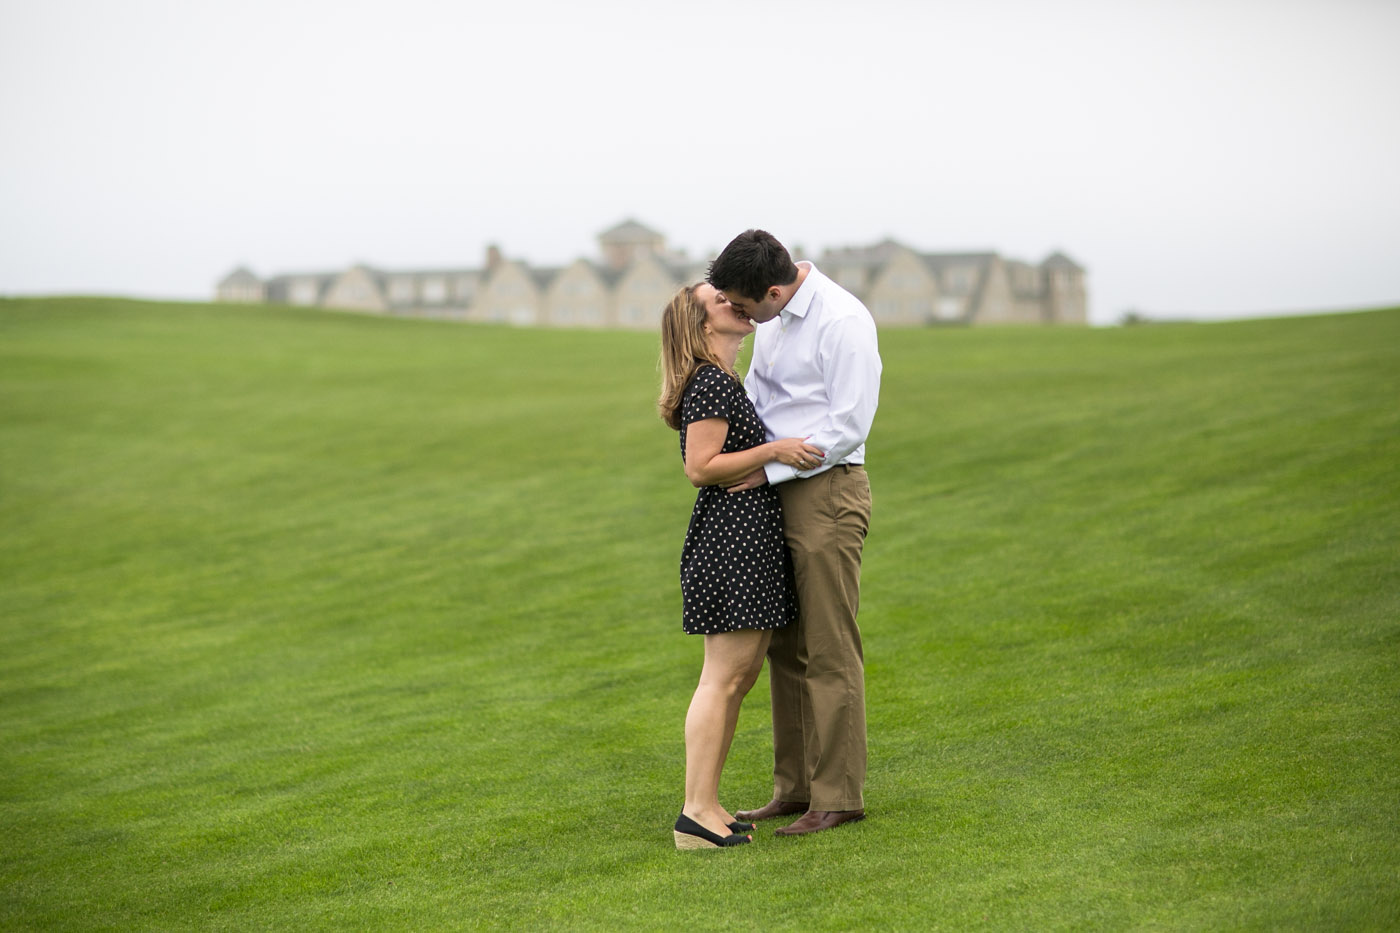 Half_moon_Bay_Engagement_Ritz_2